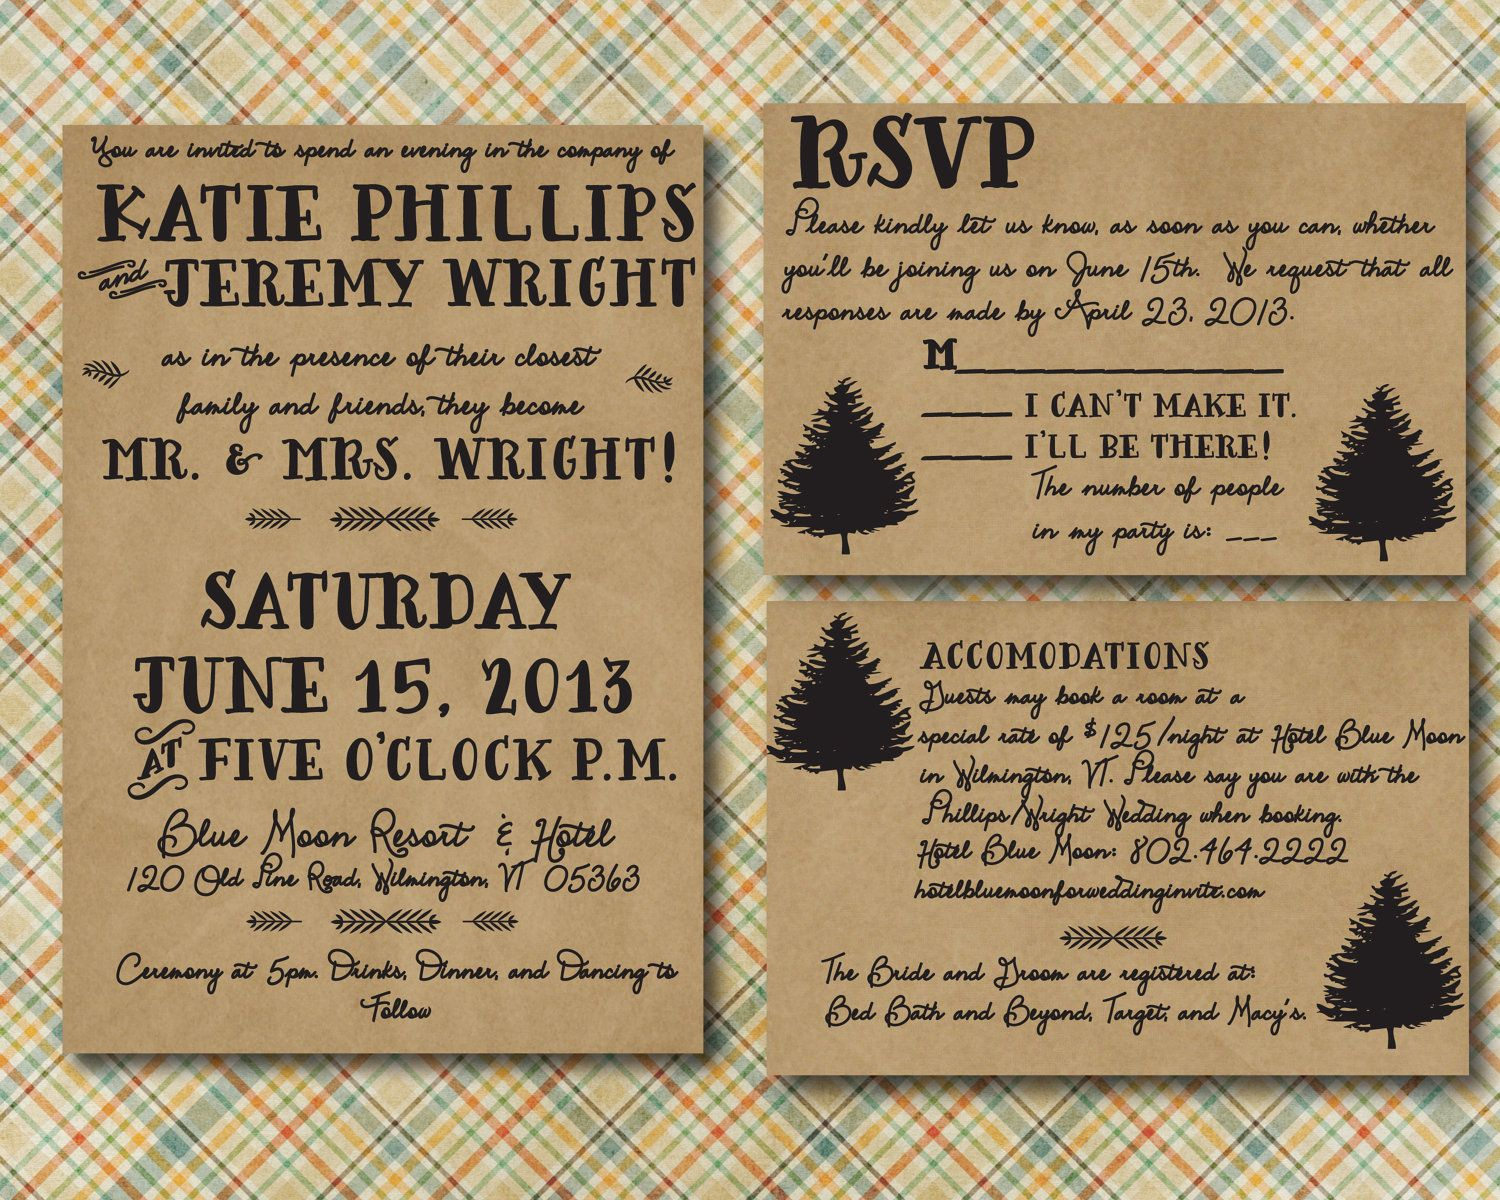 Outdoor Wedding Invitation Wording: Rustic Wedding Invitation With RSVP Card